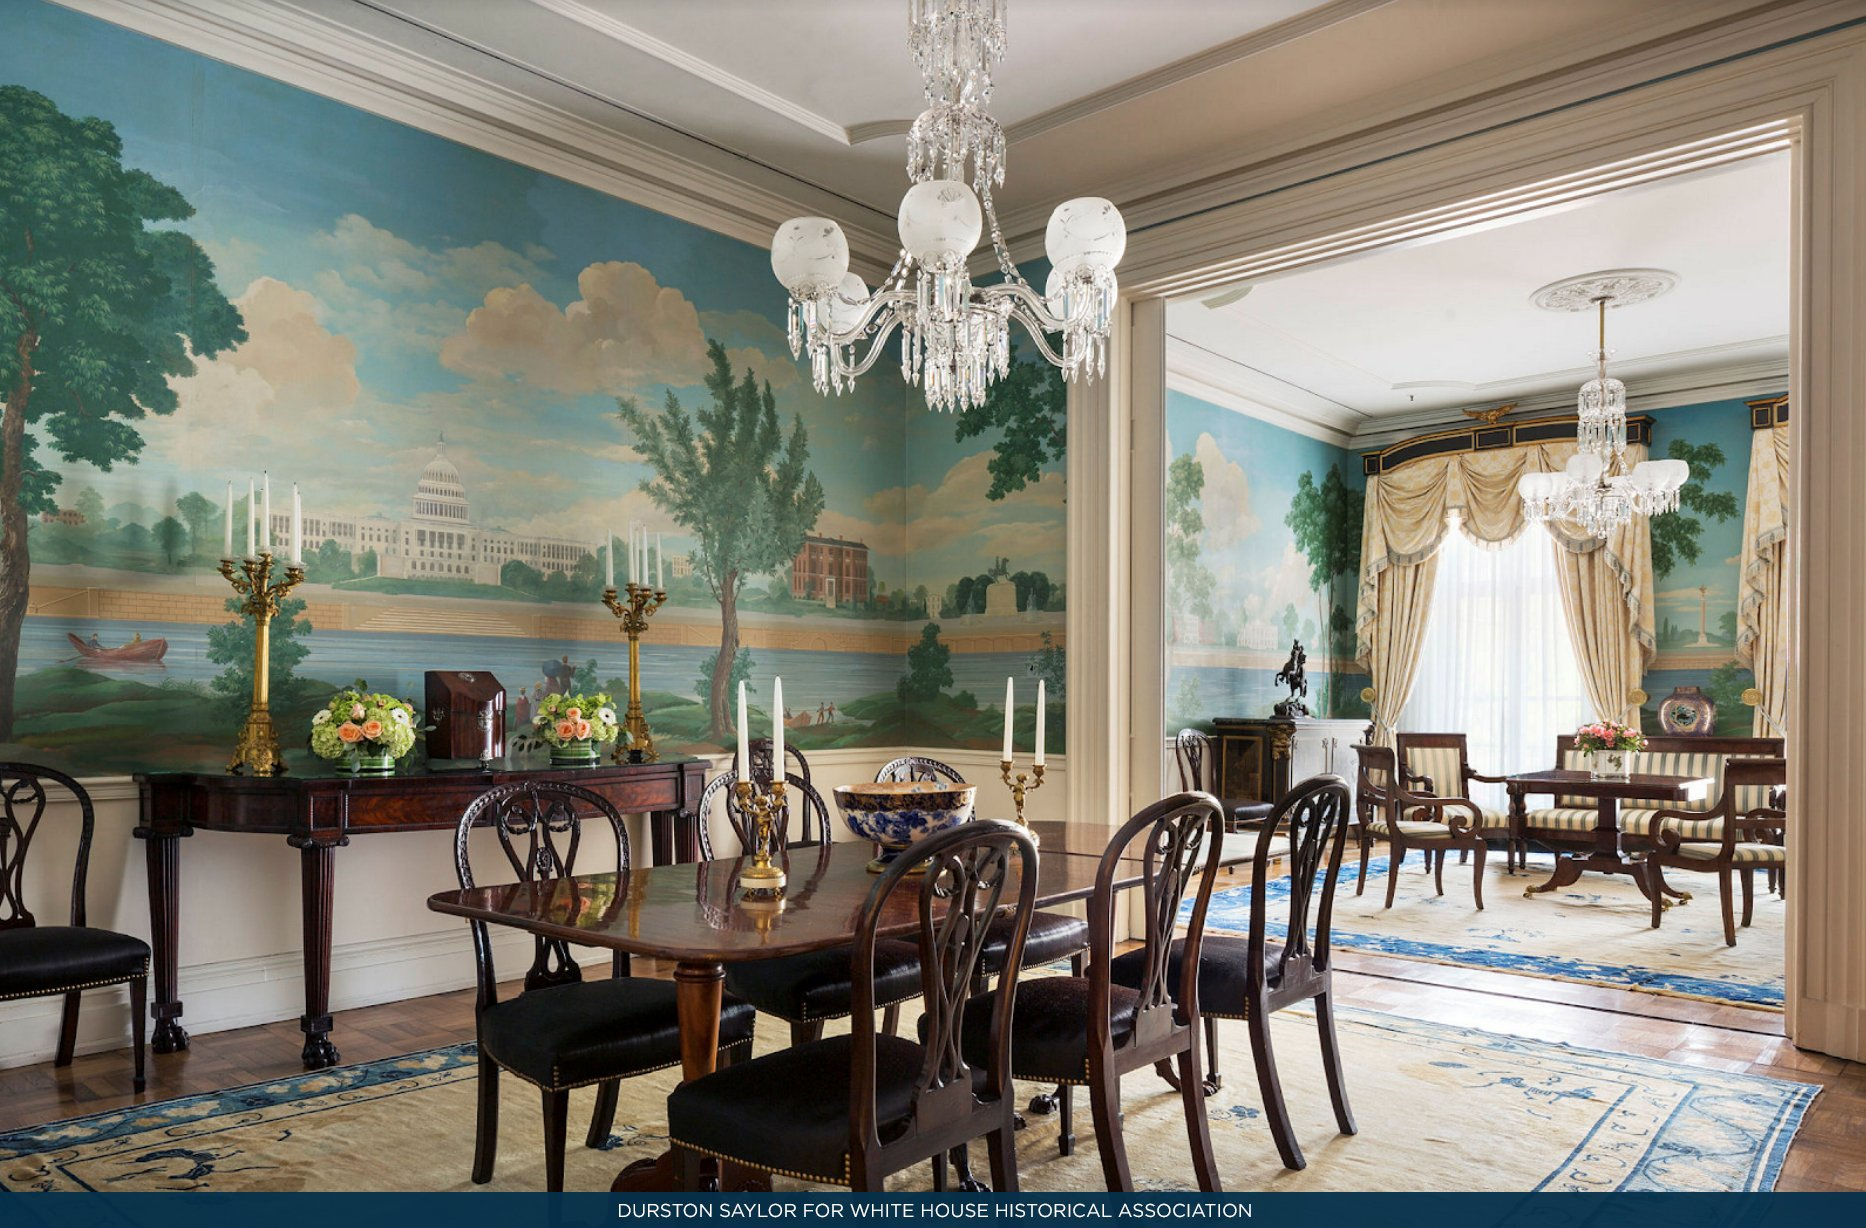 White House History On Twitter Both The Sitting Room And Dining At Jackson Place Feature A Mural Of Washington DC Painted By Robert